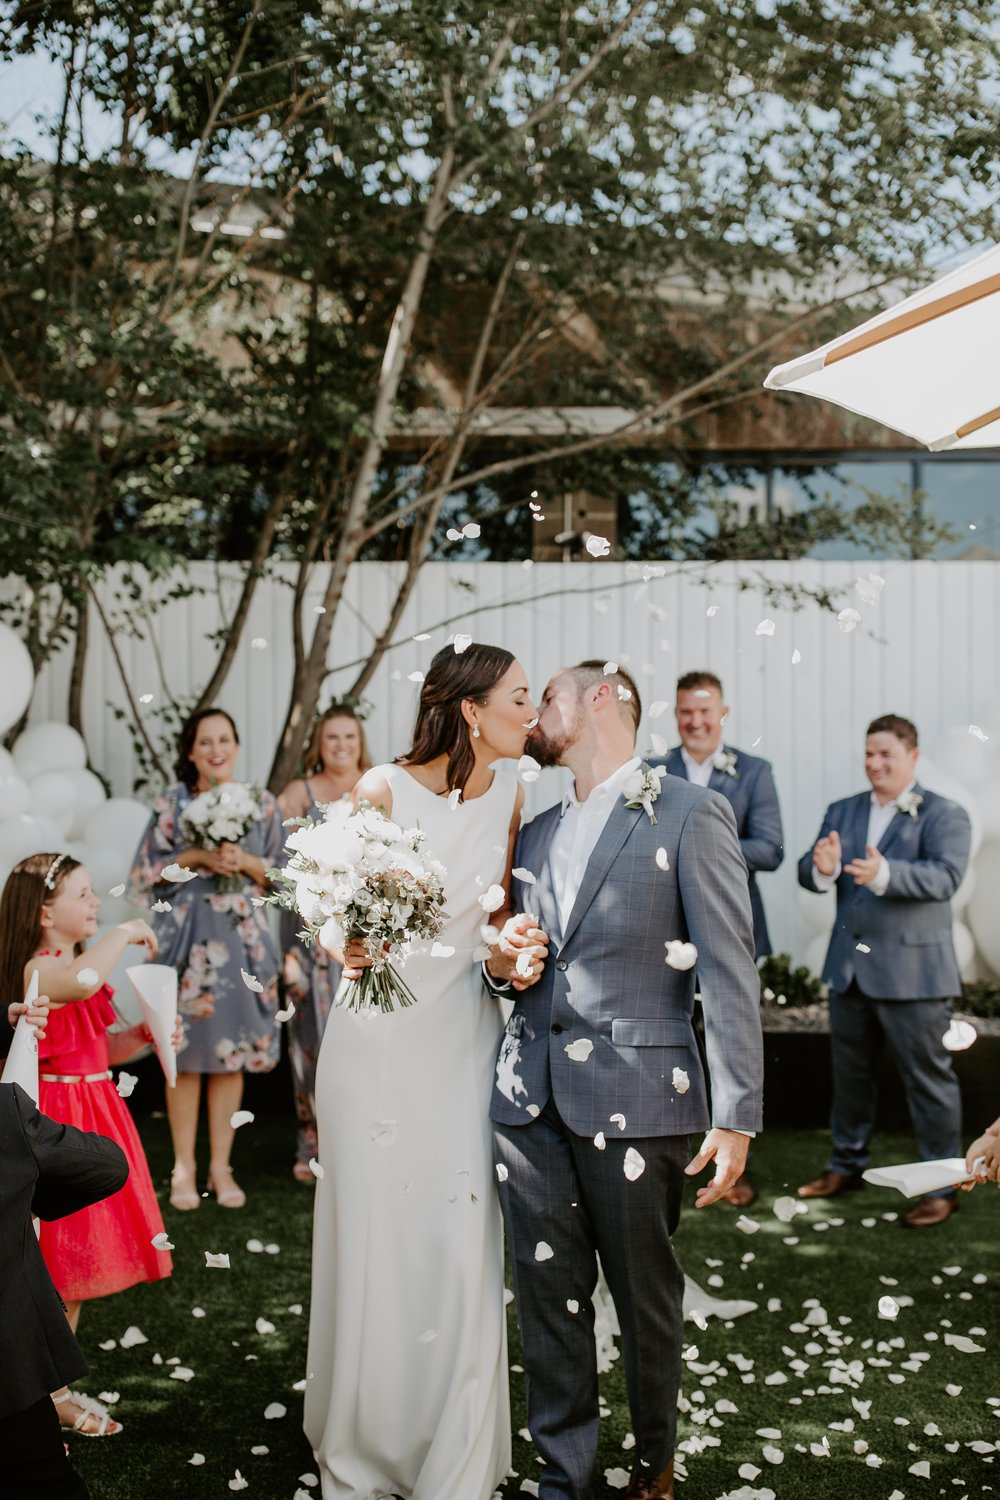 Share your vows in our intimate Private Garden -